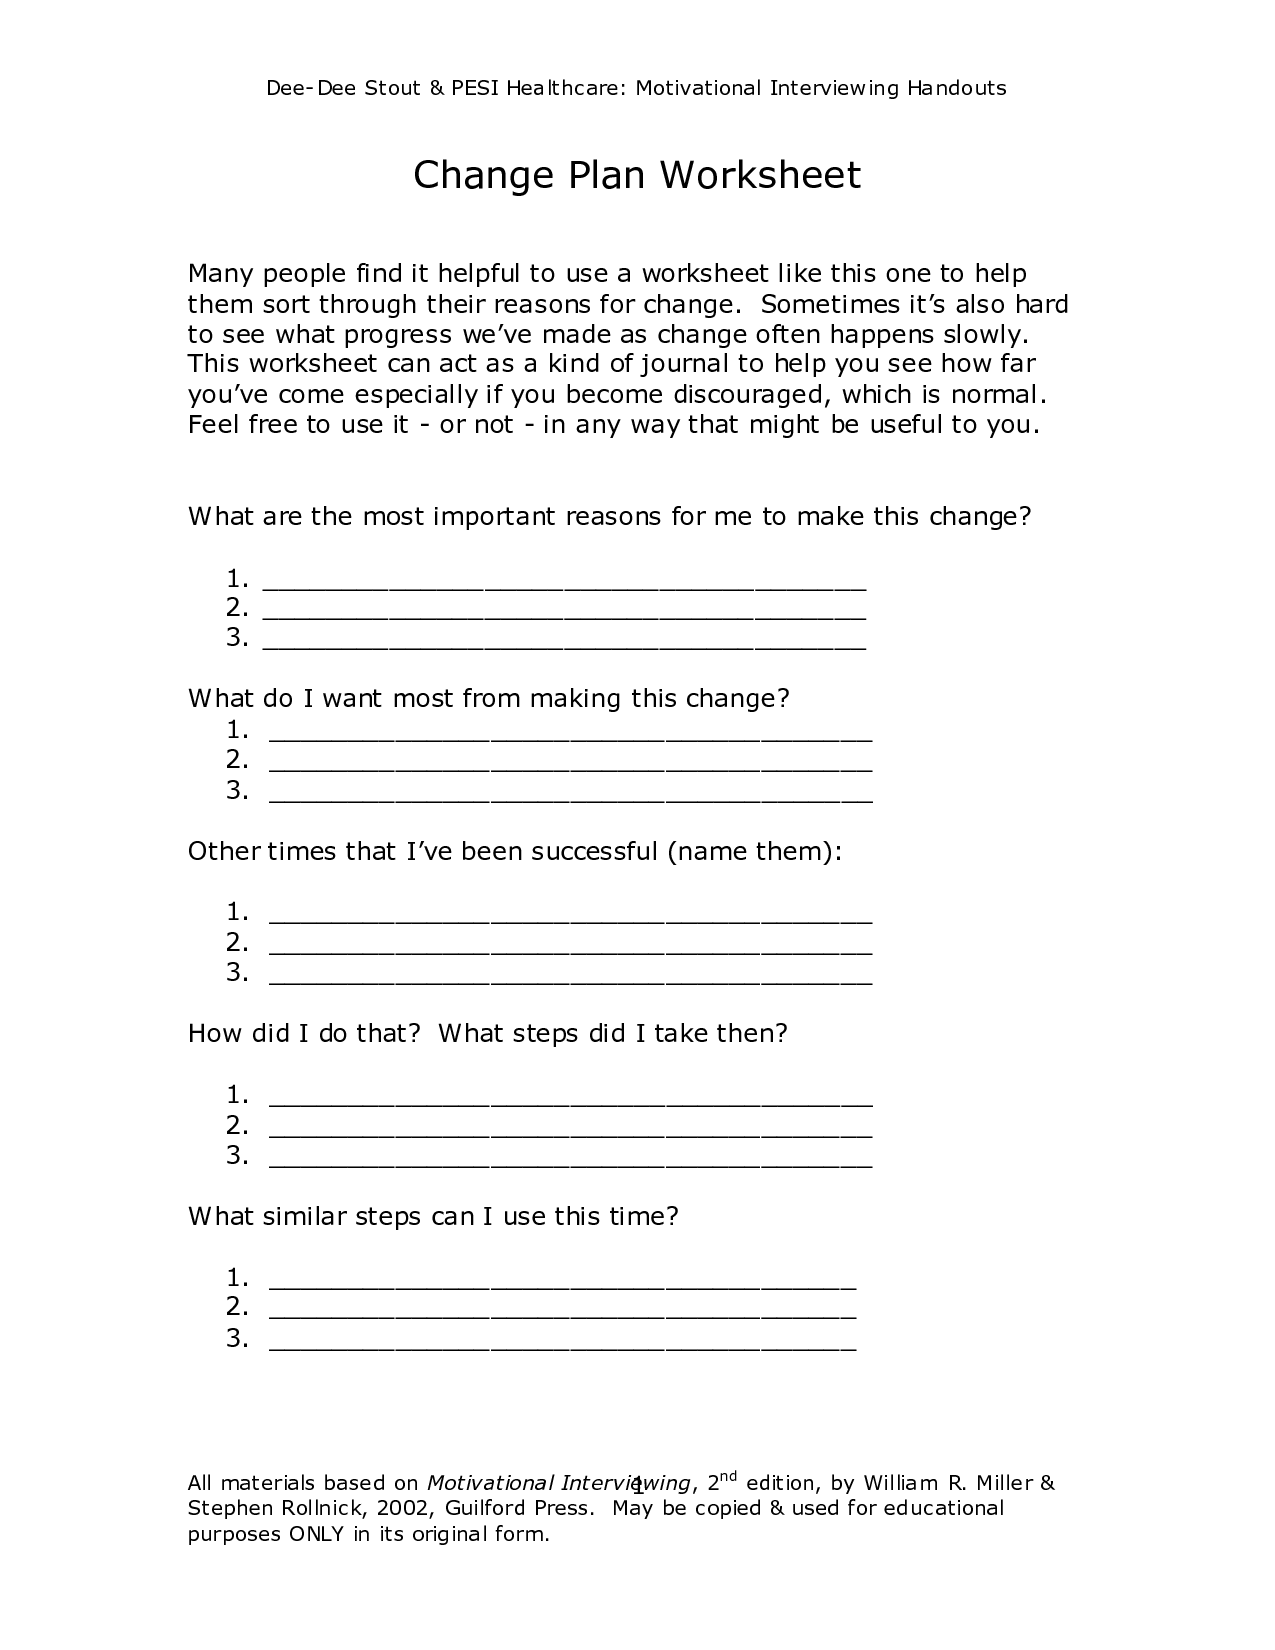 Sheeto Postpic 02 Motivational Interviewing Stages Of Change Worksheet